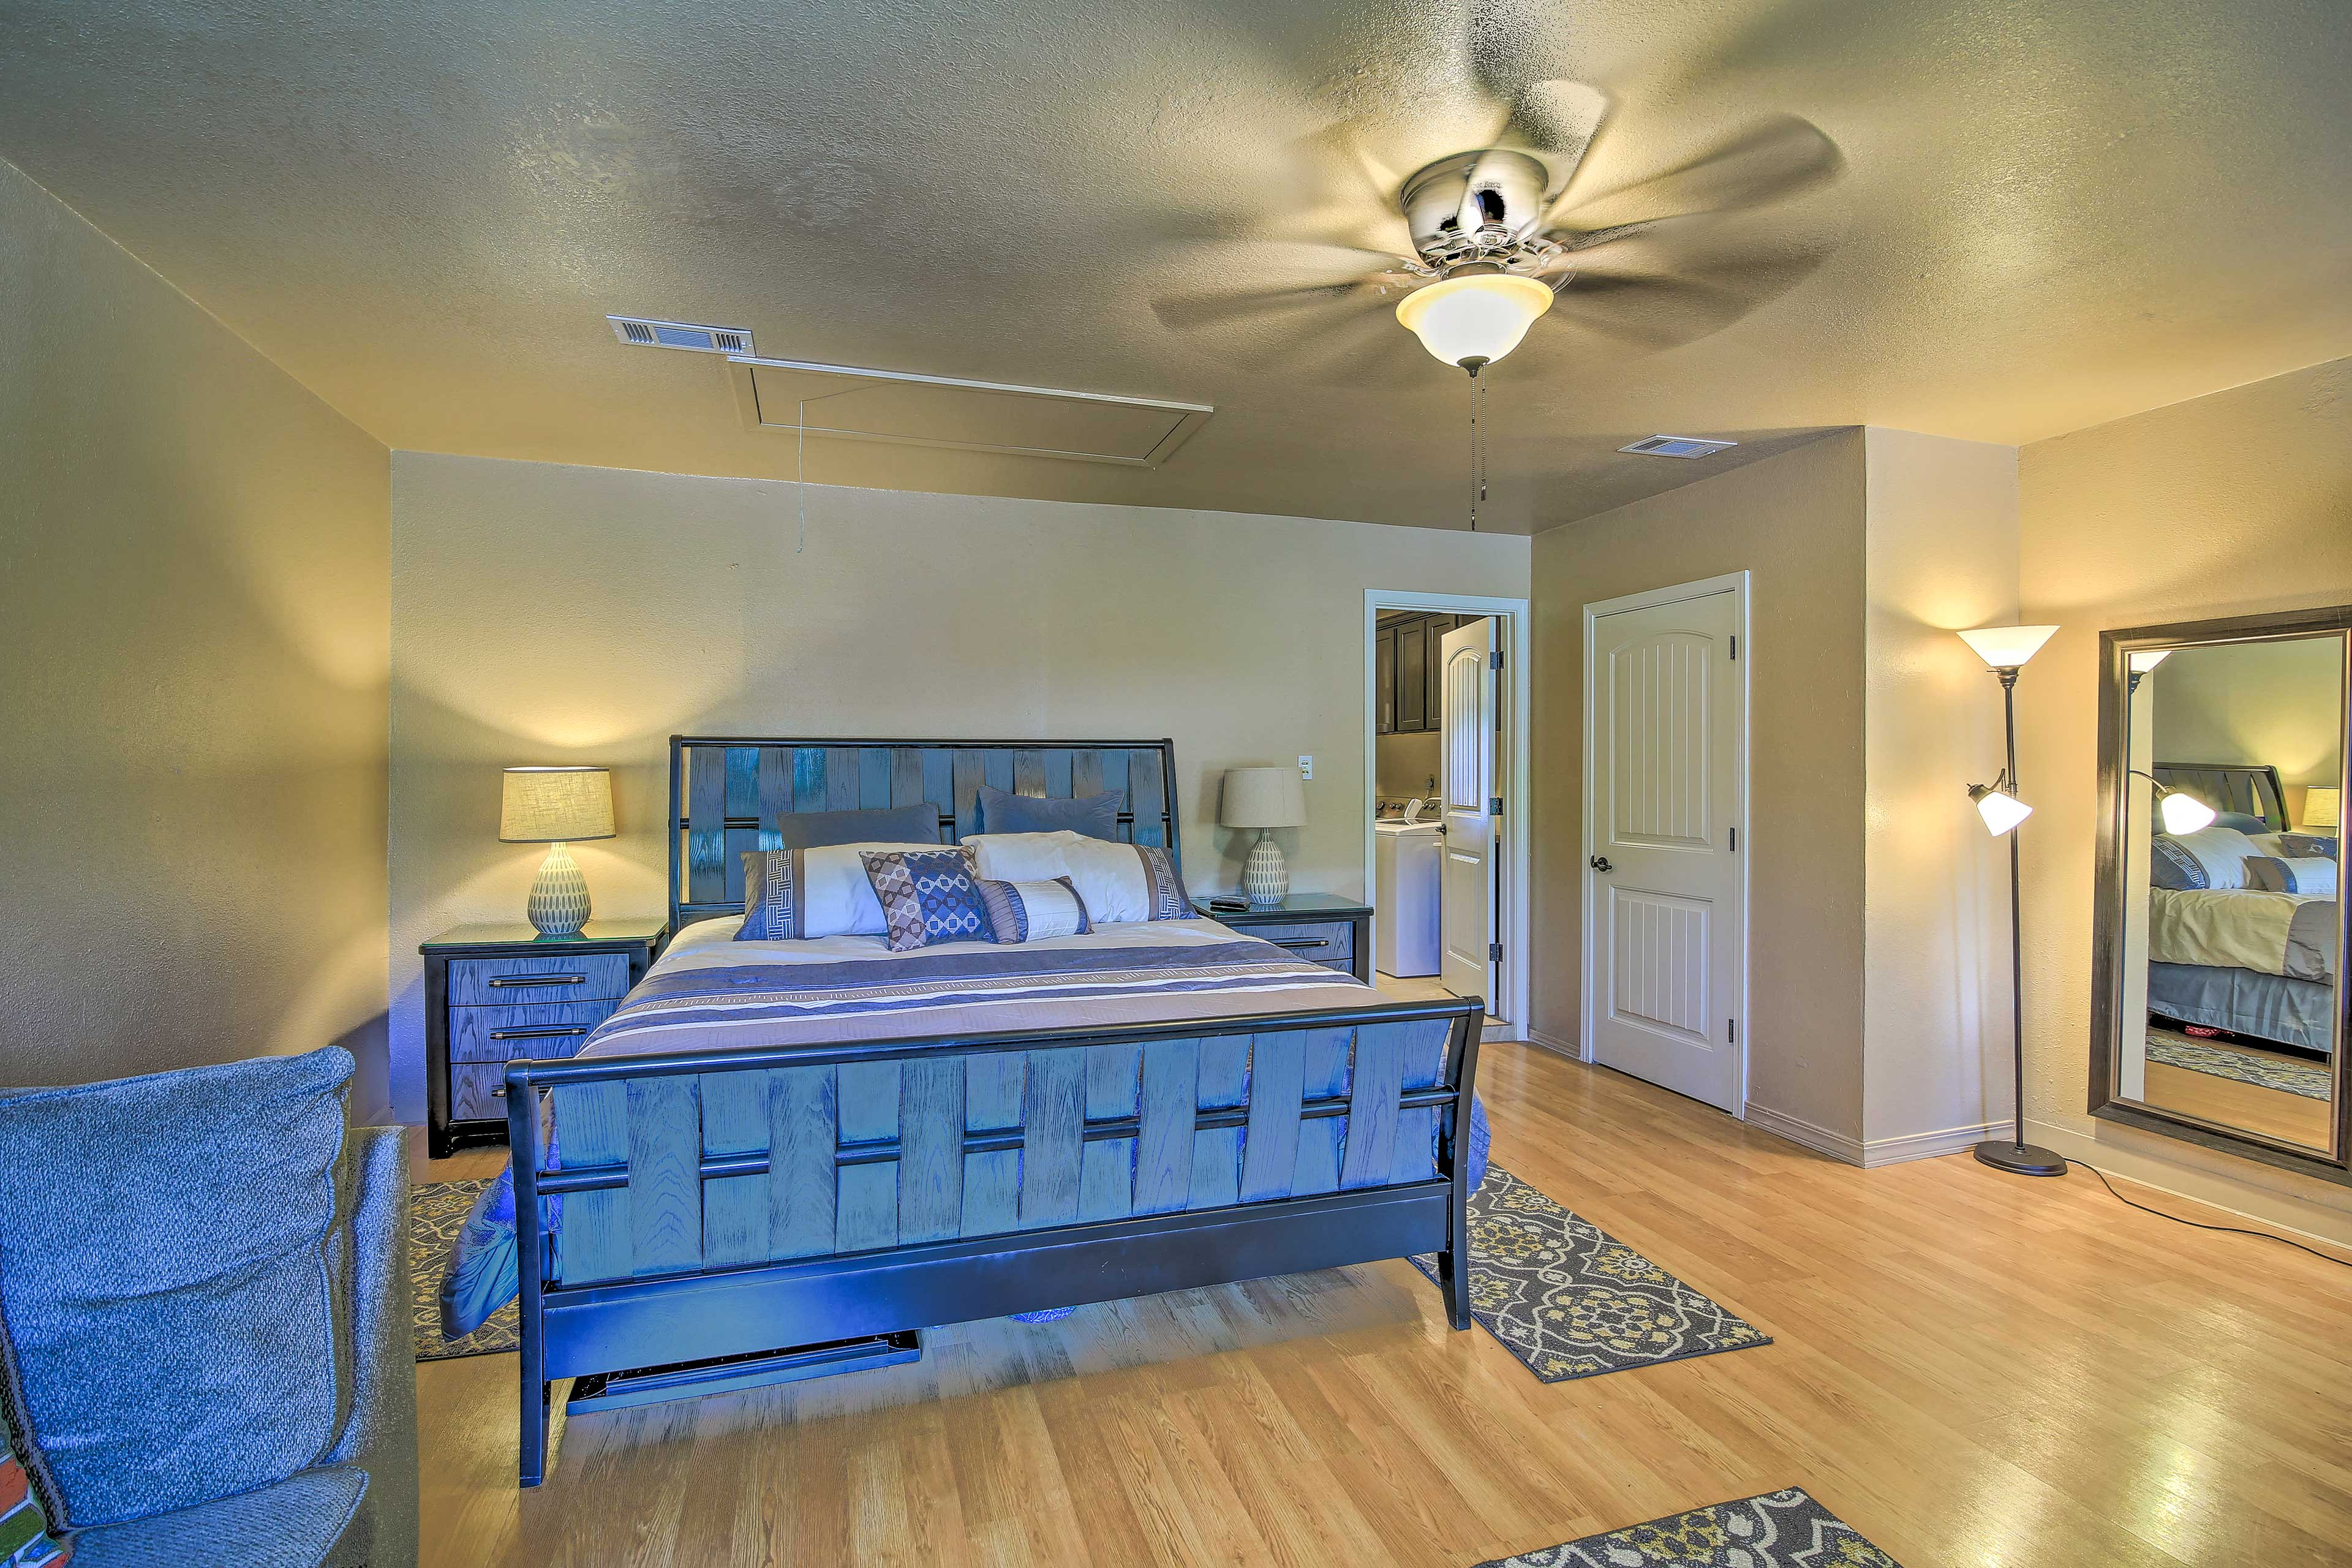 You'll find a lavish king bed in the second bedroom.